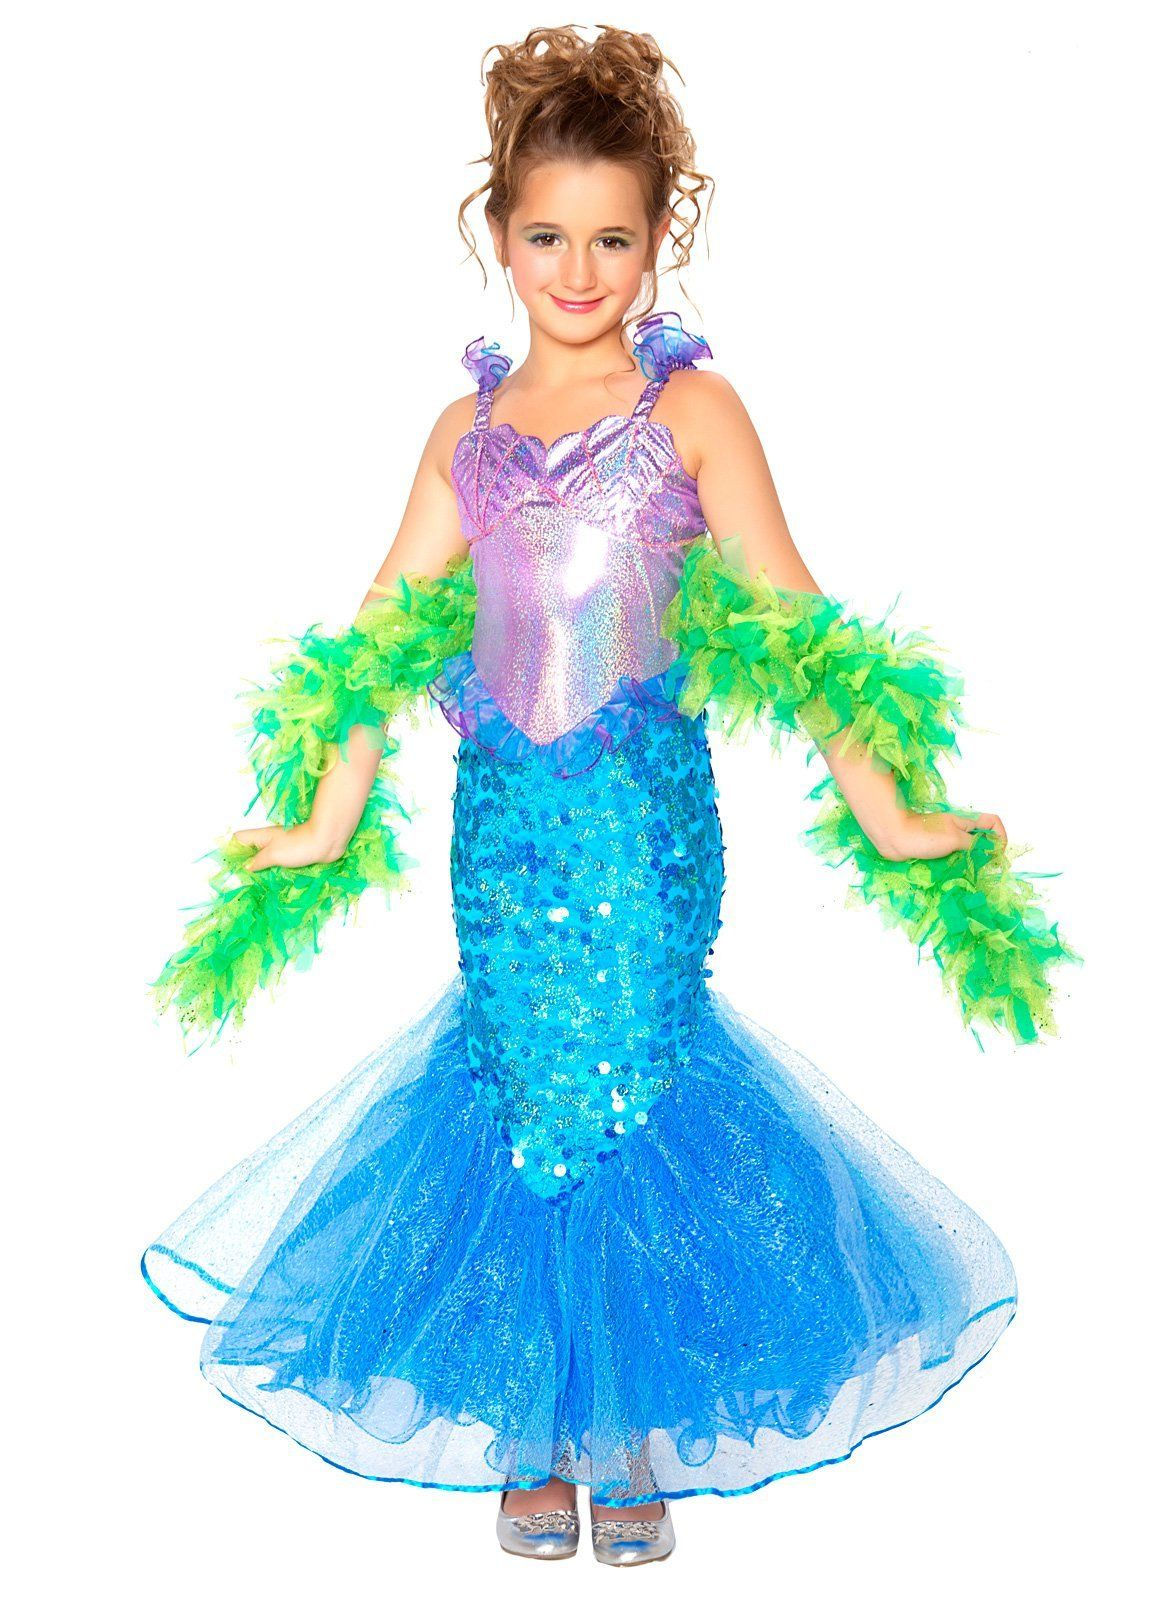 Amazon.com Mermaid Toddler / Child Costume Toys u0026 Games  sc 1 st  Pinterest & Amazon.com: Mermaid Toddler / Child Costume: Toys u0026 Games ...